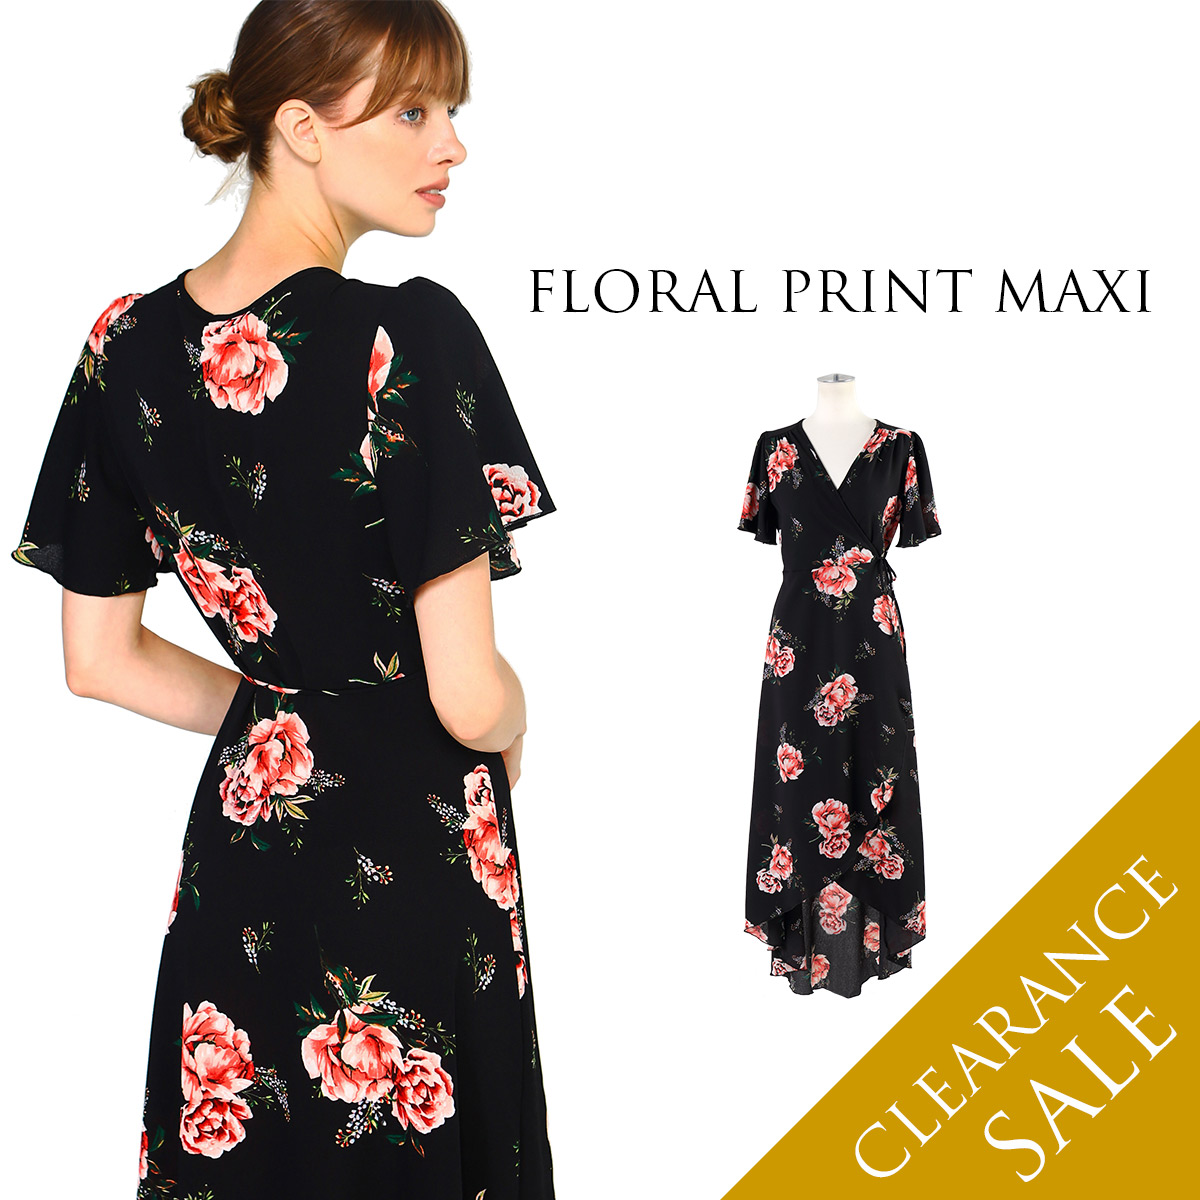 5b687235899 The arrival limited number of than American N.Y! The maxi dress of the lap  type.